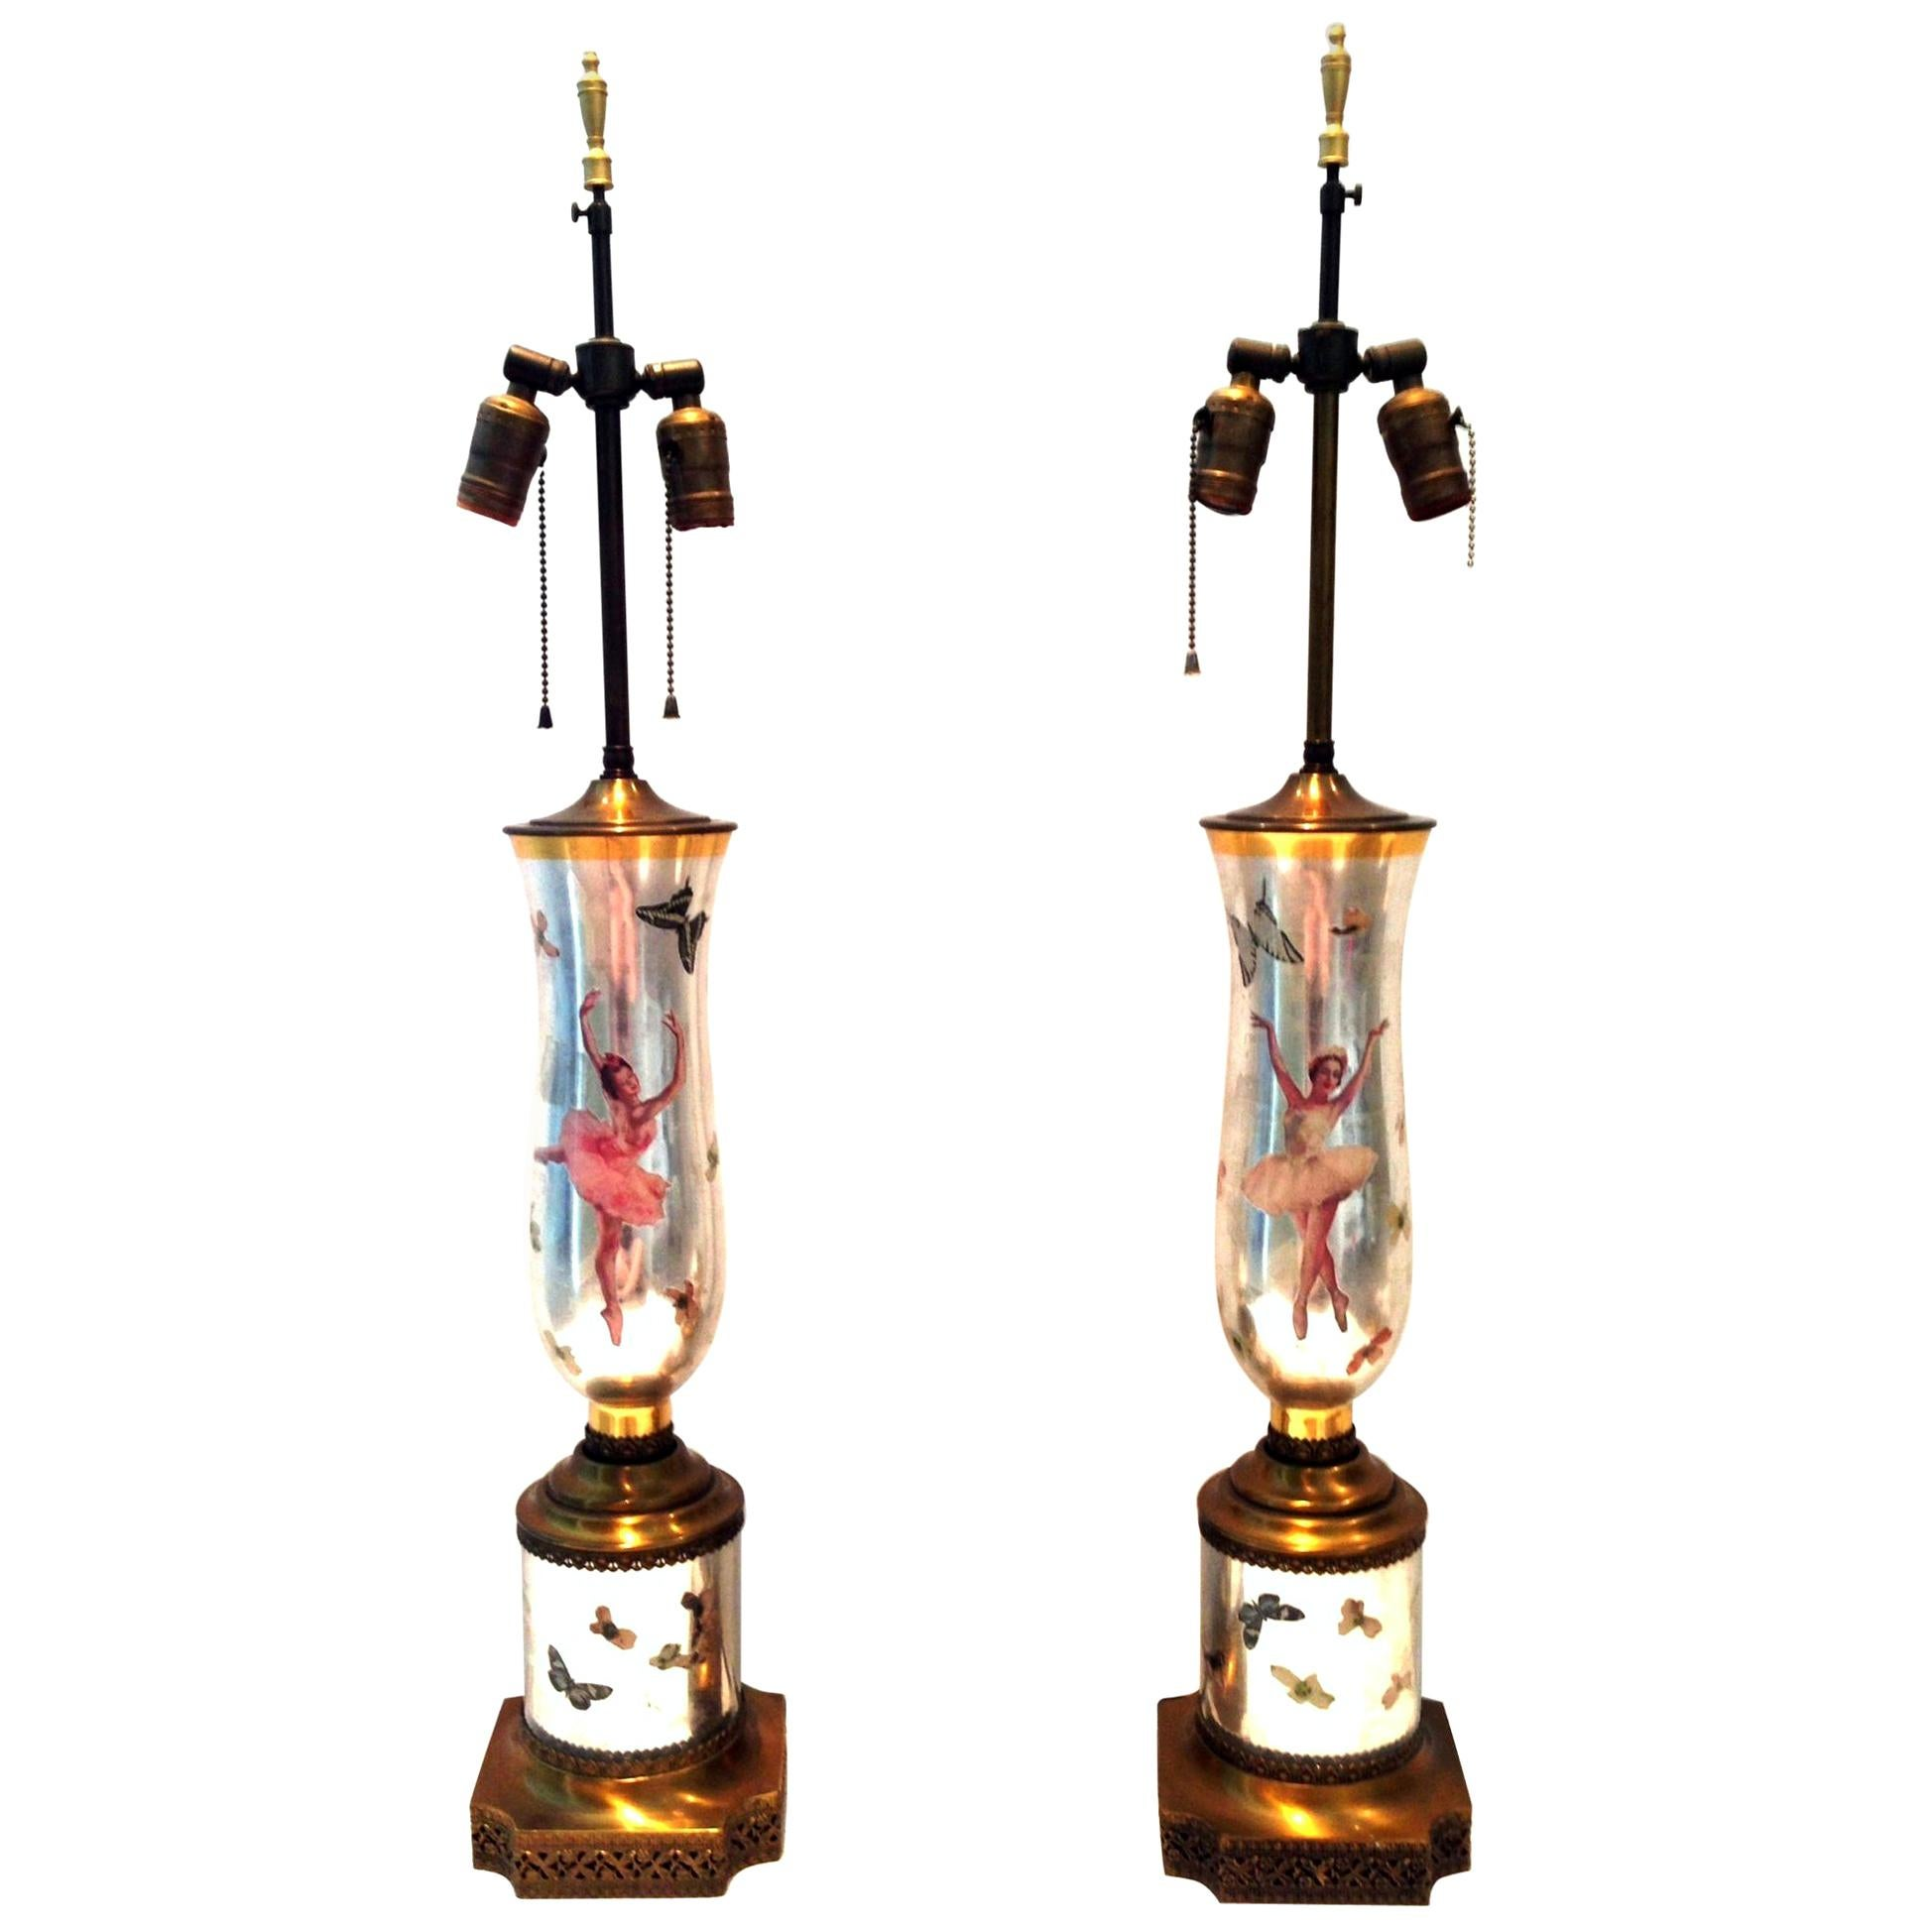 1940s Pair of Silver Leaf Reverse Painted Art Glass Ballerina & Butterfly Lamps